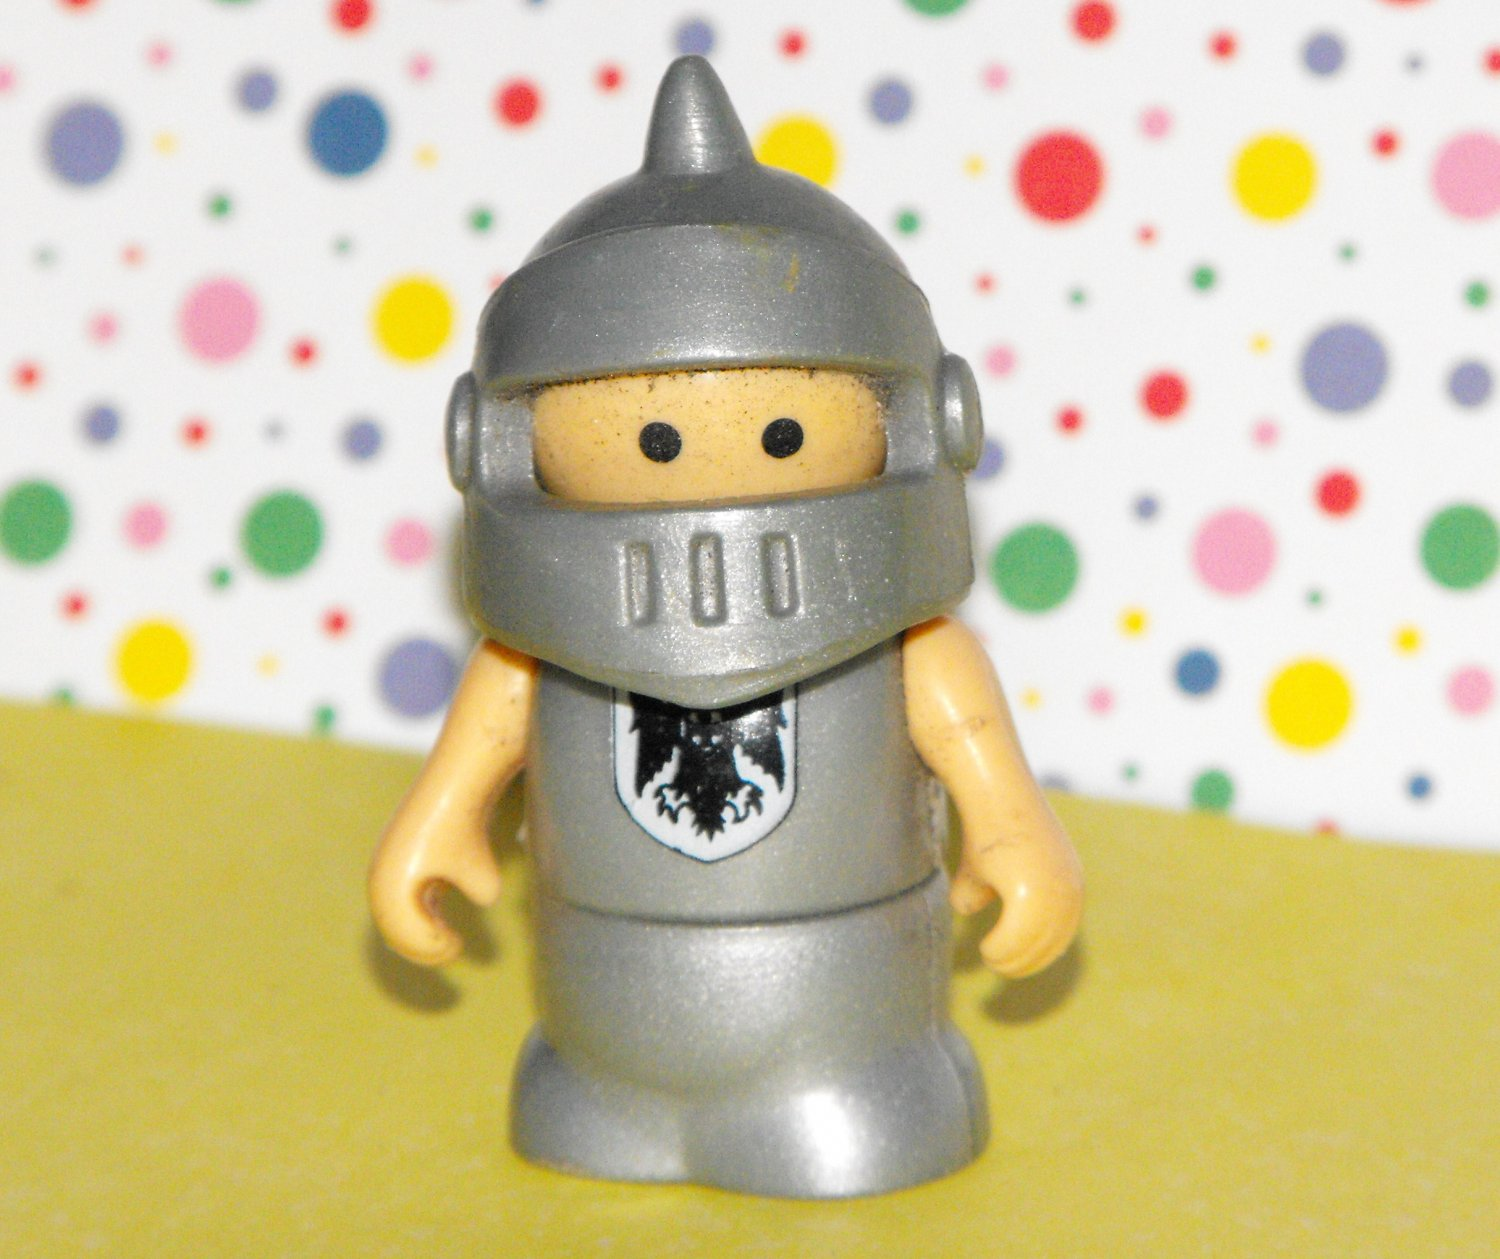 Shelcore Duplo Building Set Knight Figure